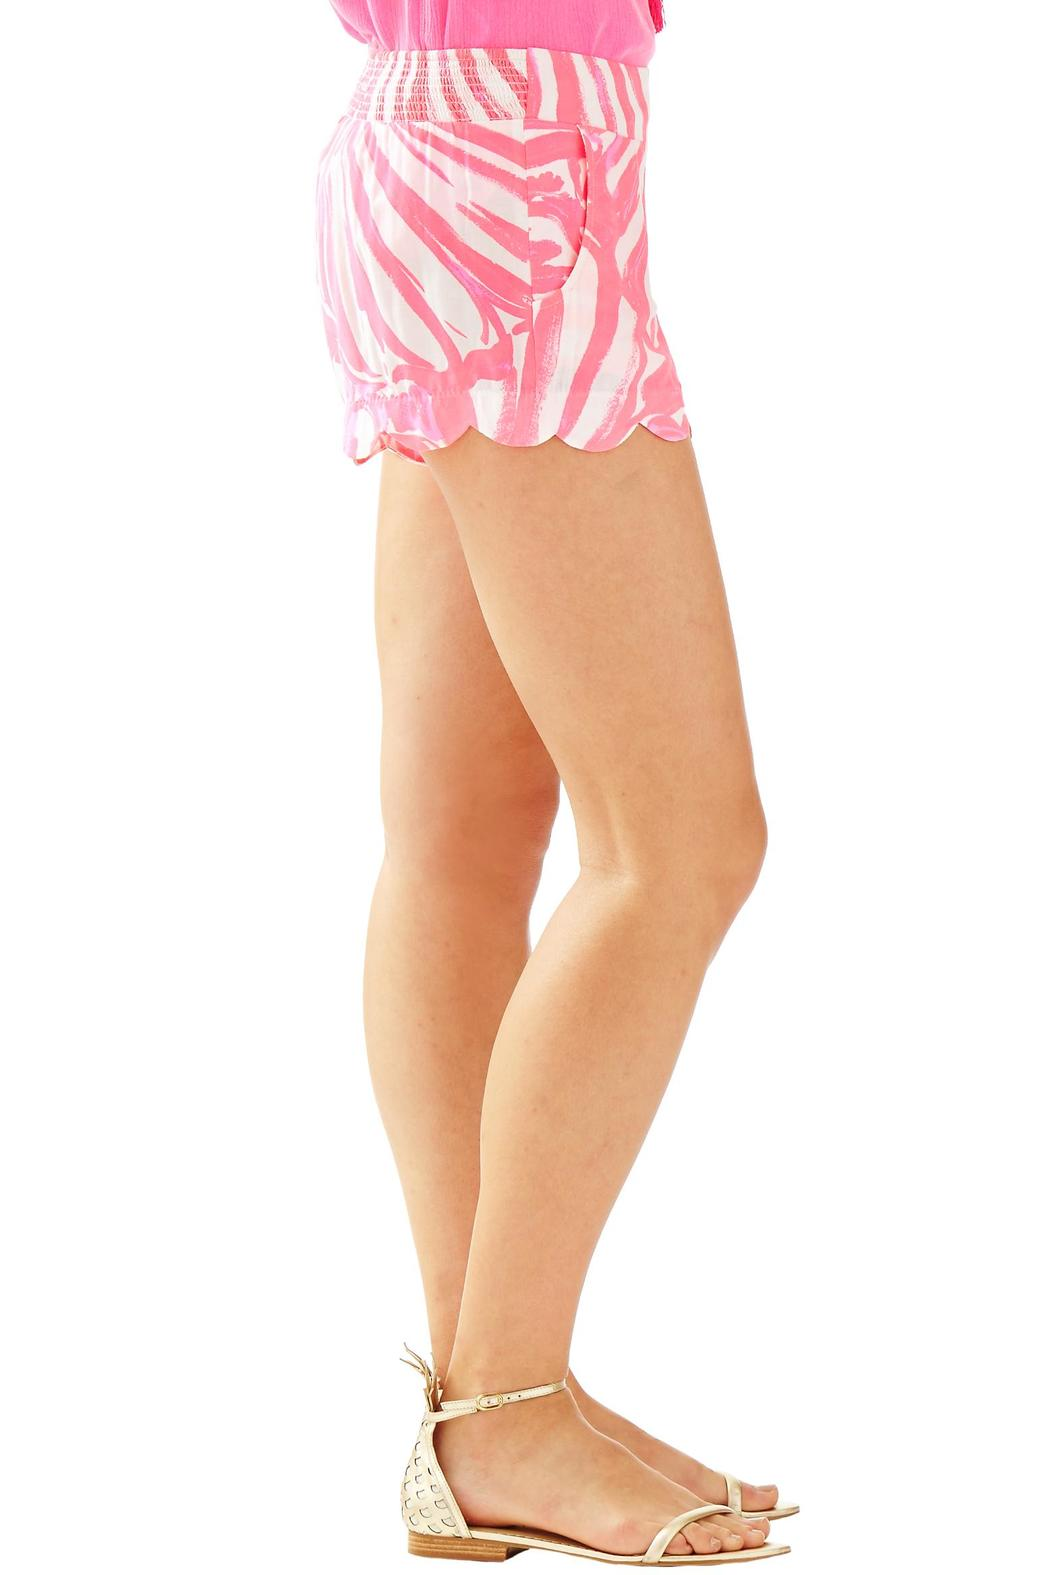 Lilly Pulitzer Dahlia Short From Sandestin Golf And Beach